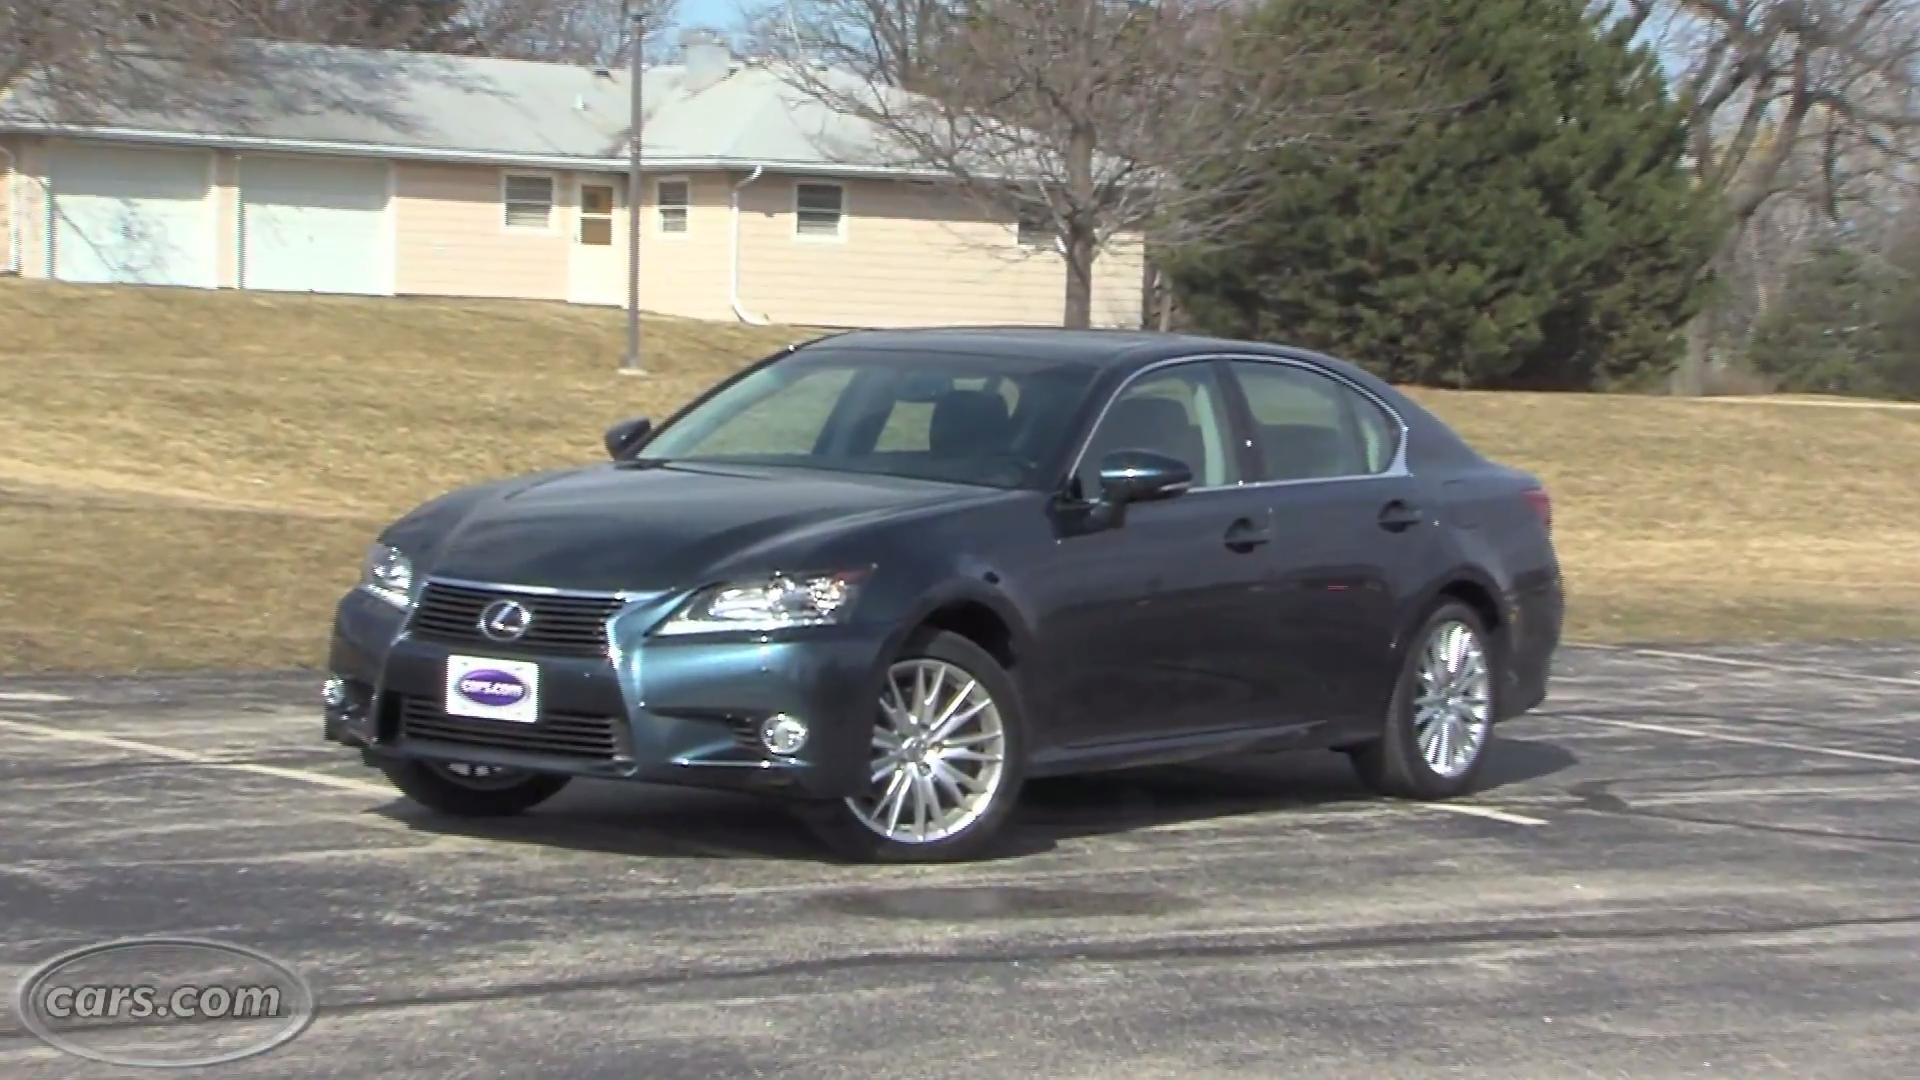 2013 lexus gs 350 overview | cars